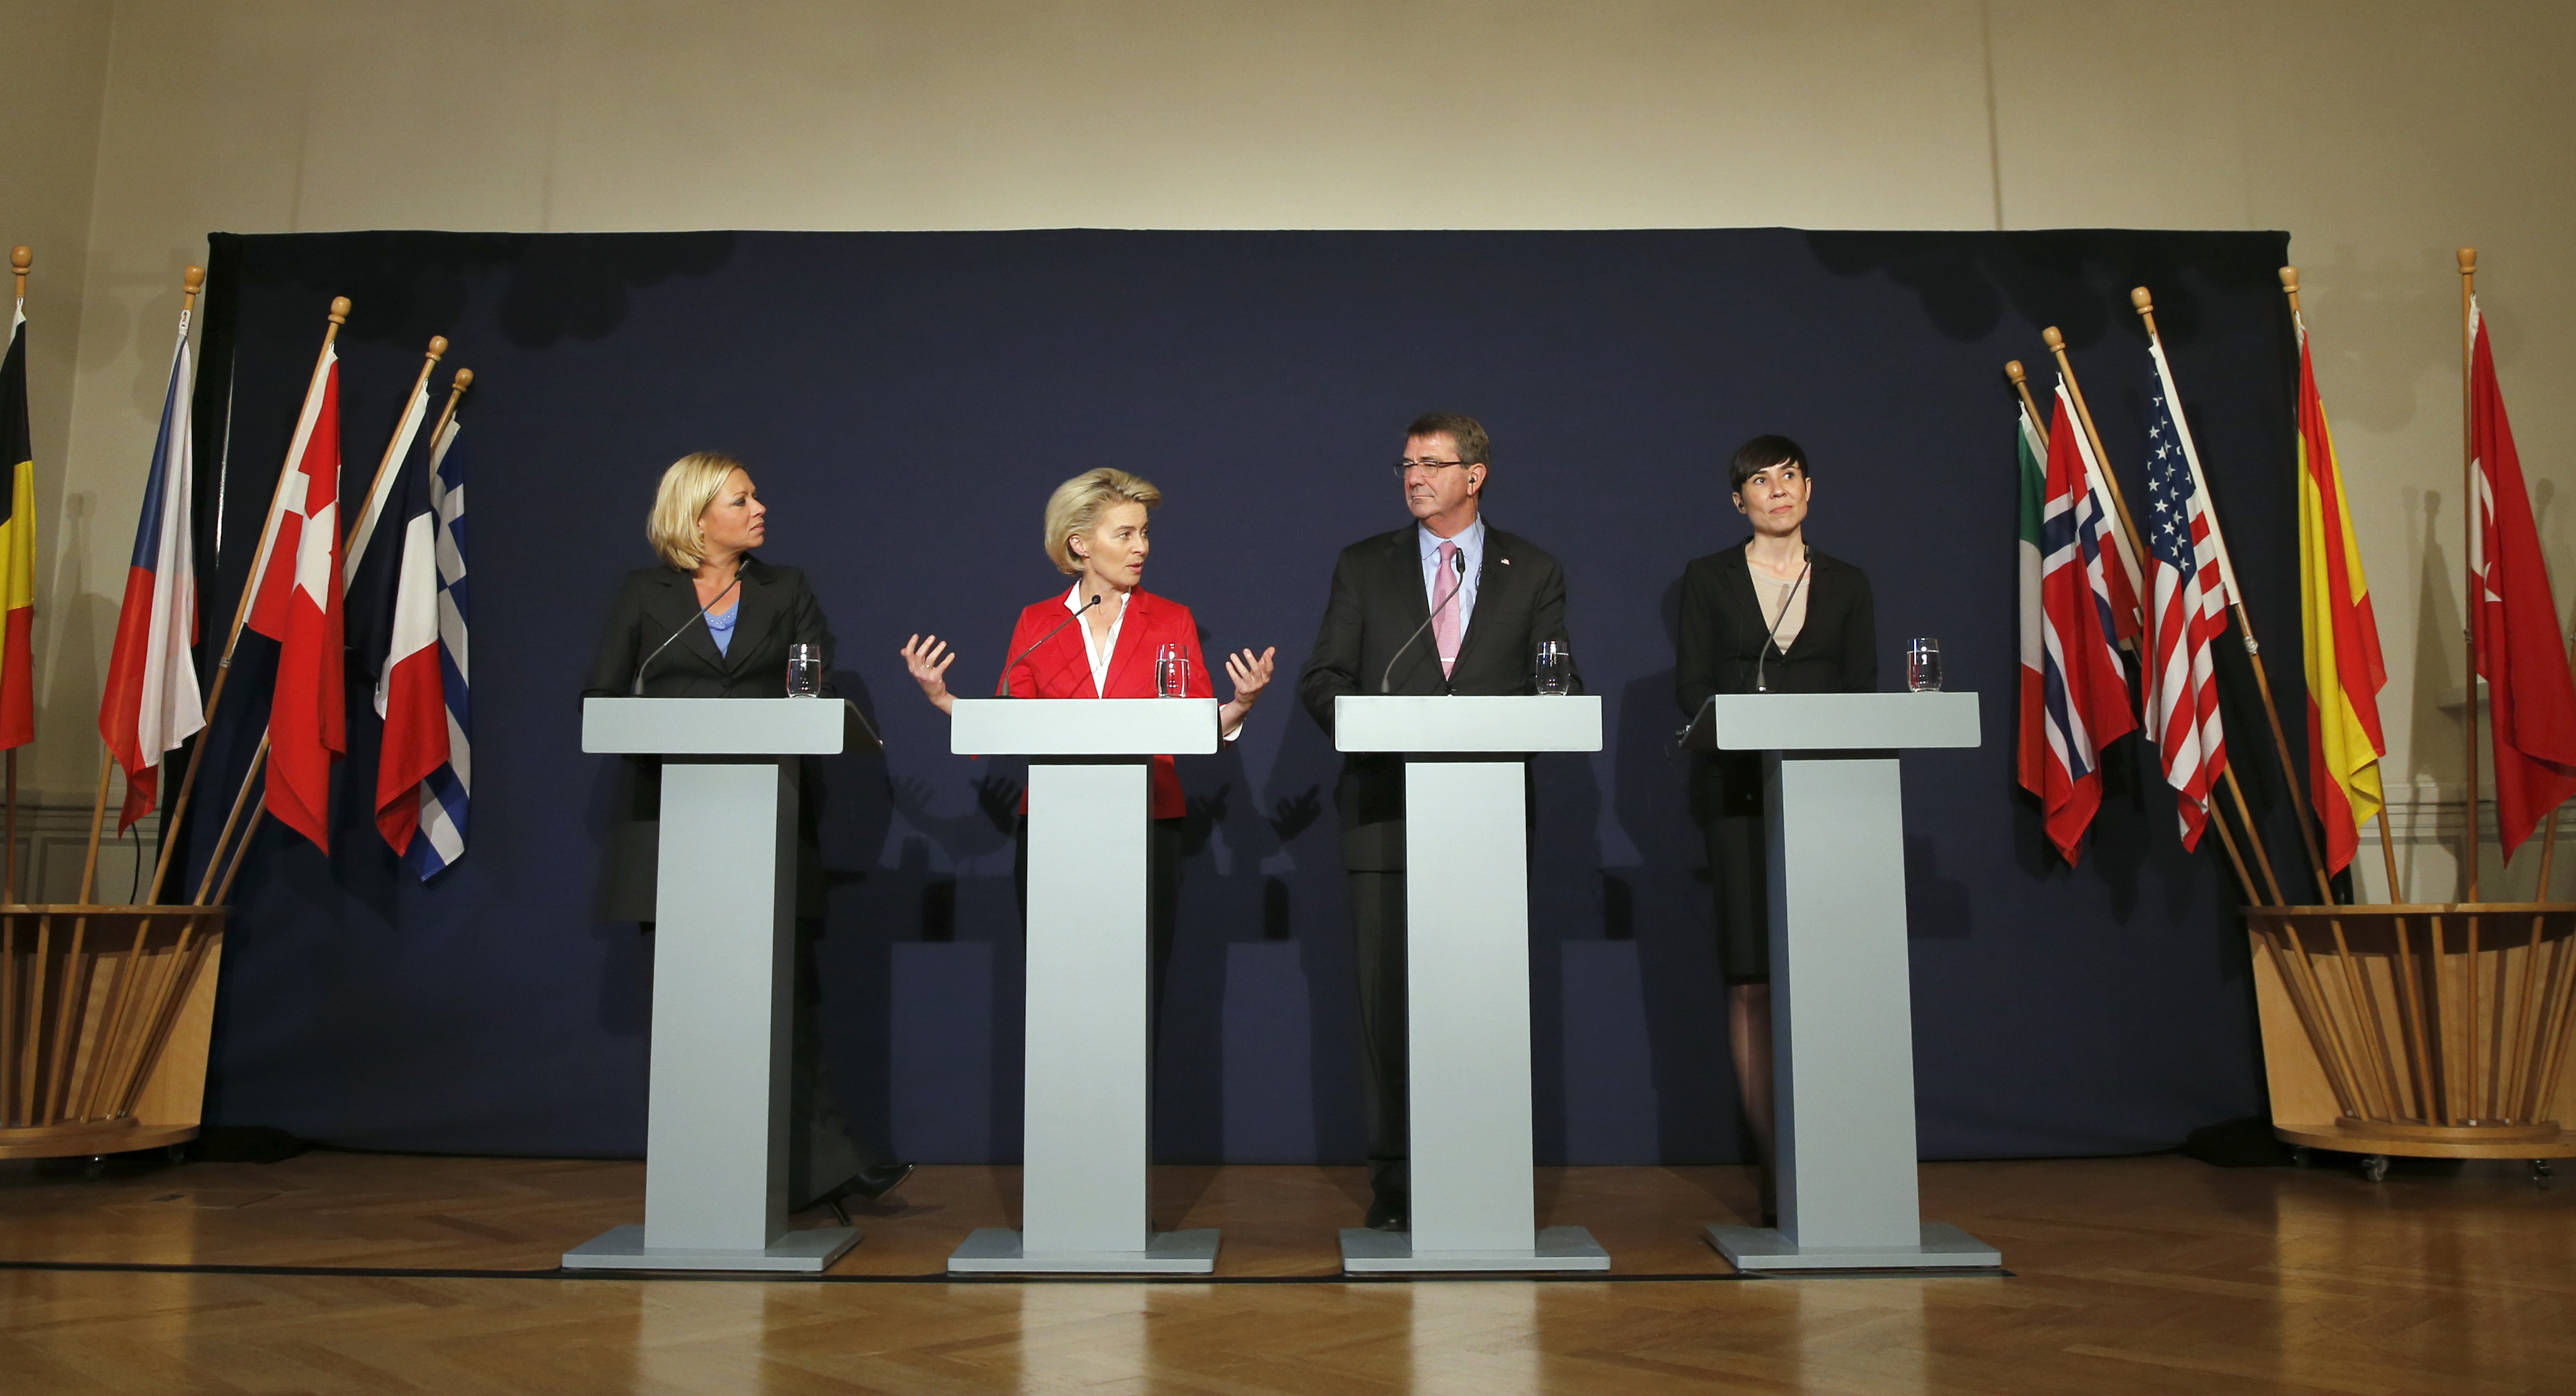 NATO states defense ministers (L-R) Jeanine Hennis-Plasschaert of the Netherlands, Ursula von der Leyen of Germany, Ashton Carter of the U.S. and Ine Eriksen Soereide of Norway attend a news conference during a visit to the Very High Readiness Joint ...